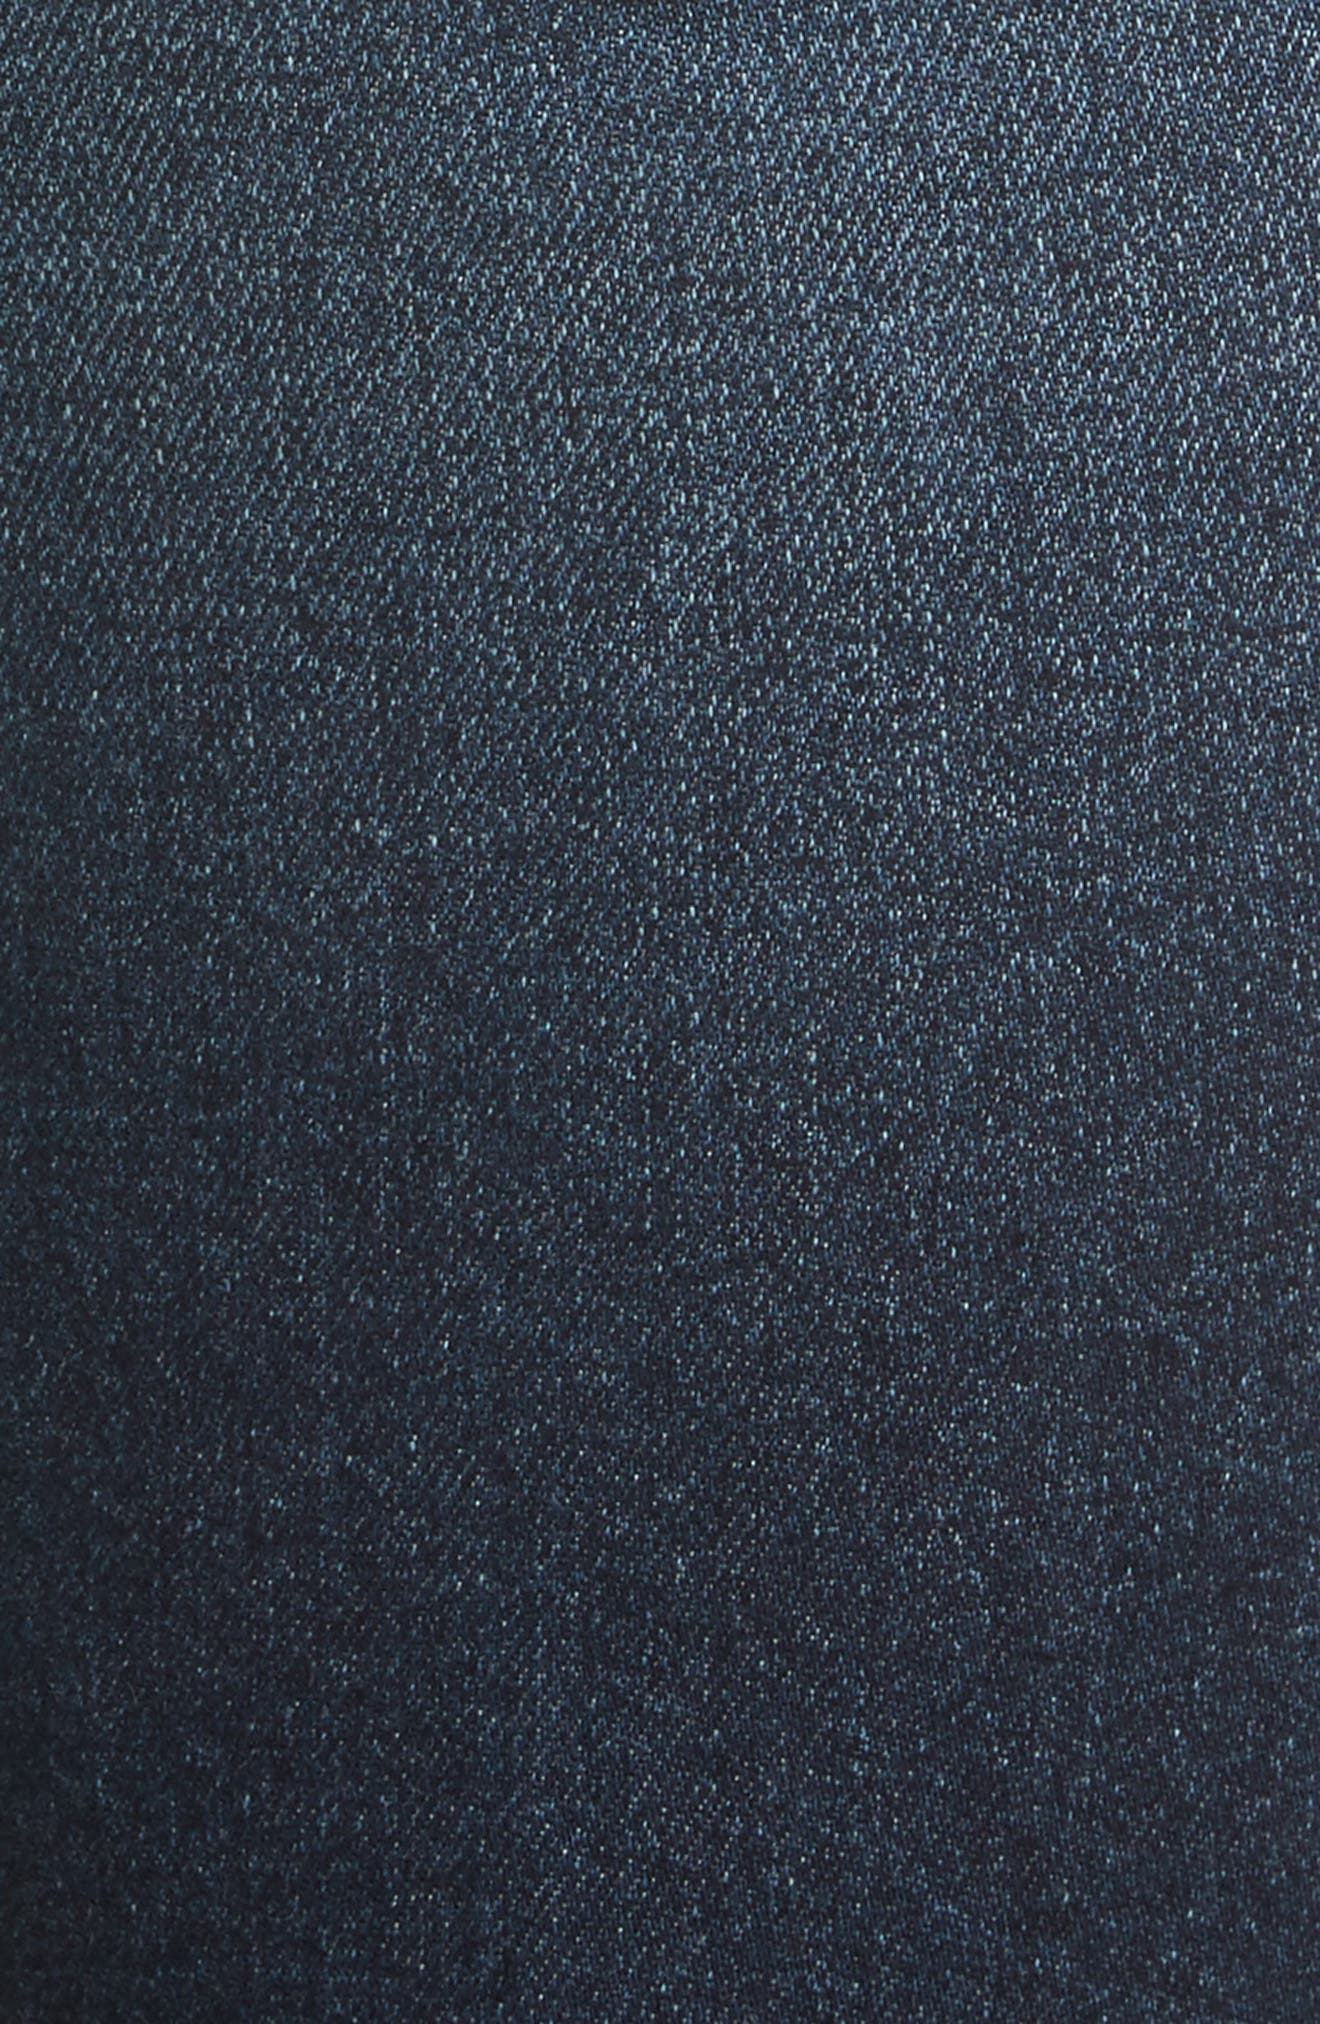 Ruffle Hem Jeans,                             Alternate thumbnail 5, color,                             Blue Midnight Wash